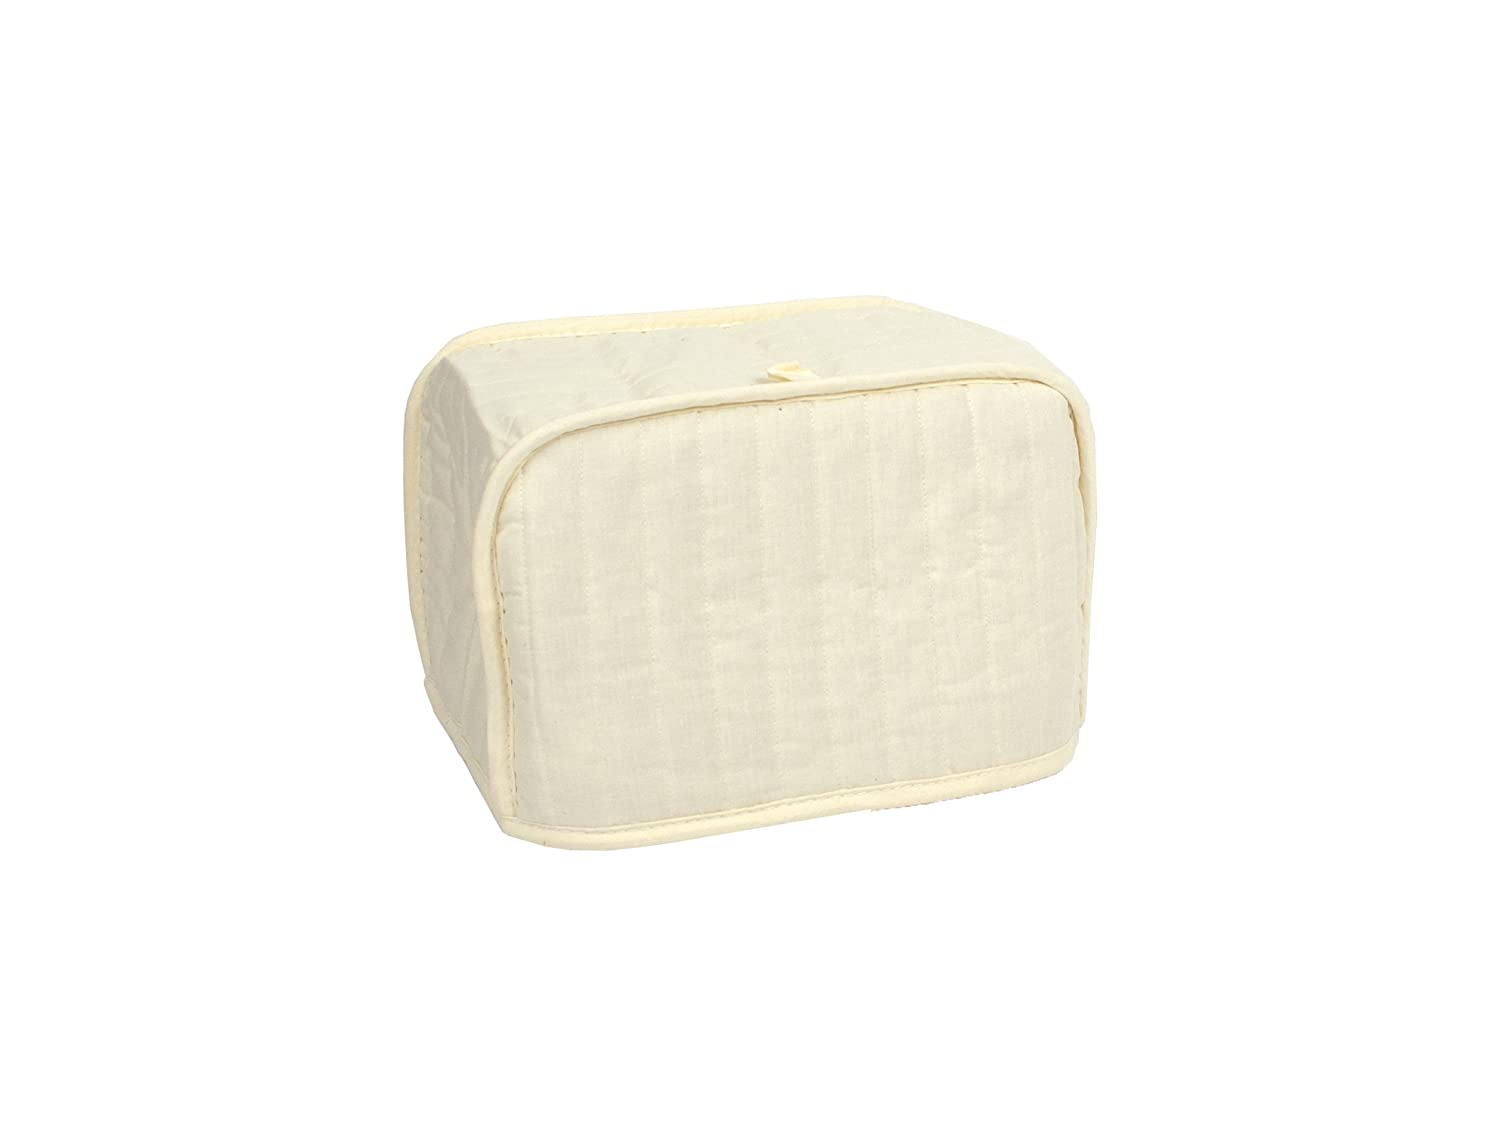 RITZ Polyester / Cotton Quilted Four Slice Toaster Appliance Cover, Dust and Fingerprint Protection, Machine Washable, Natural